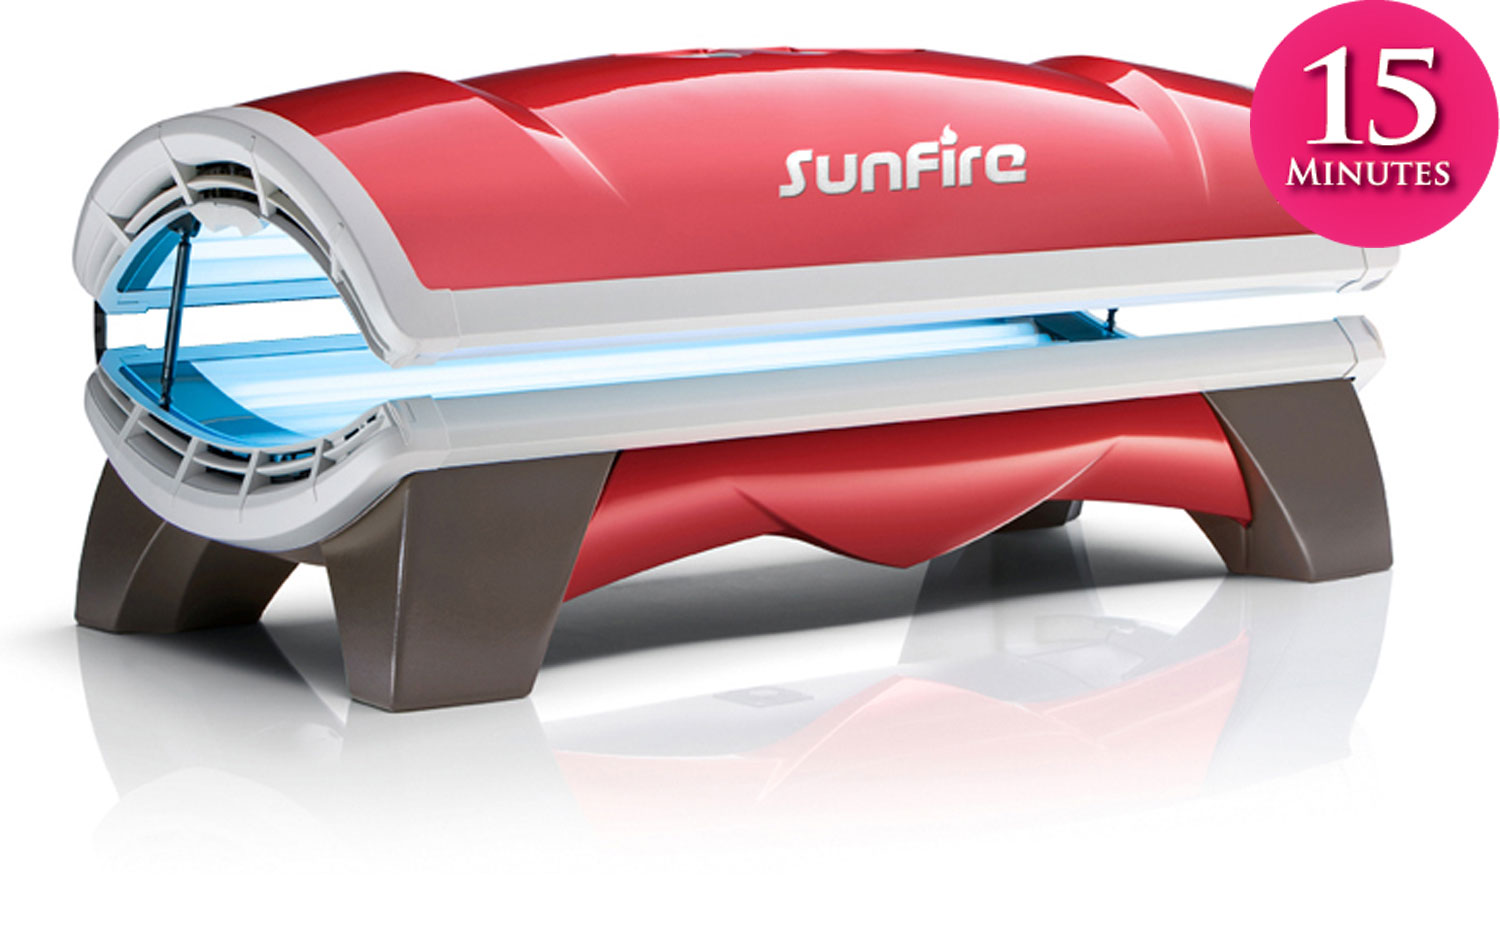 Sunfire Tanning Bed